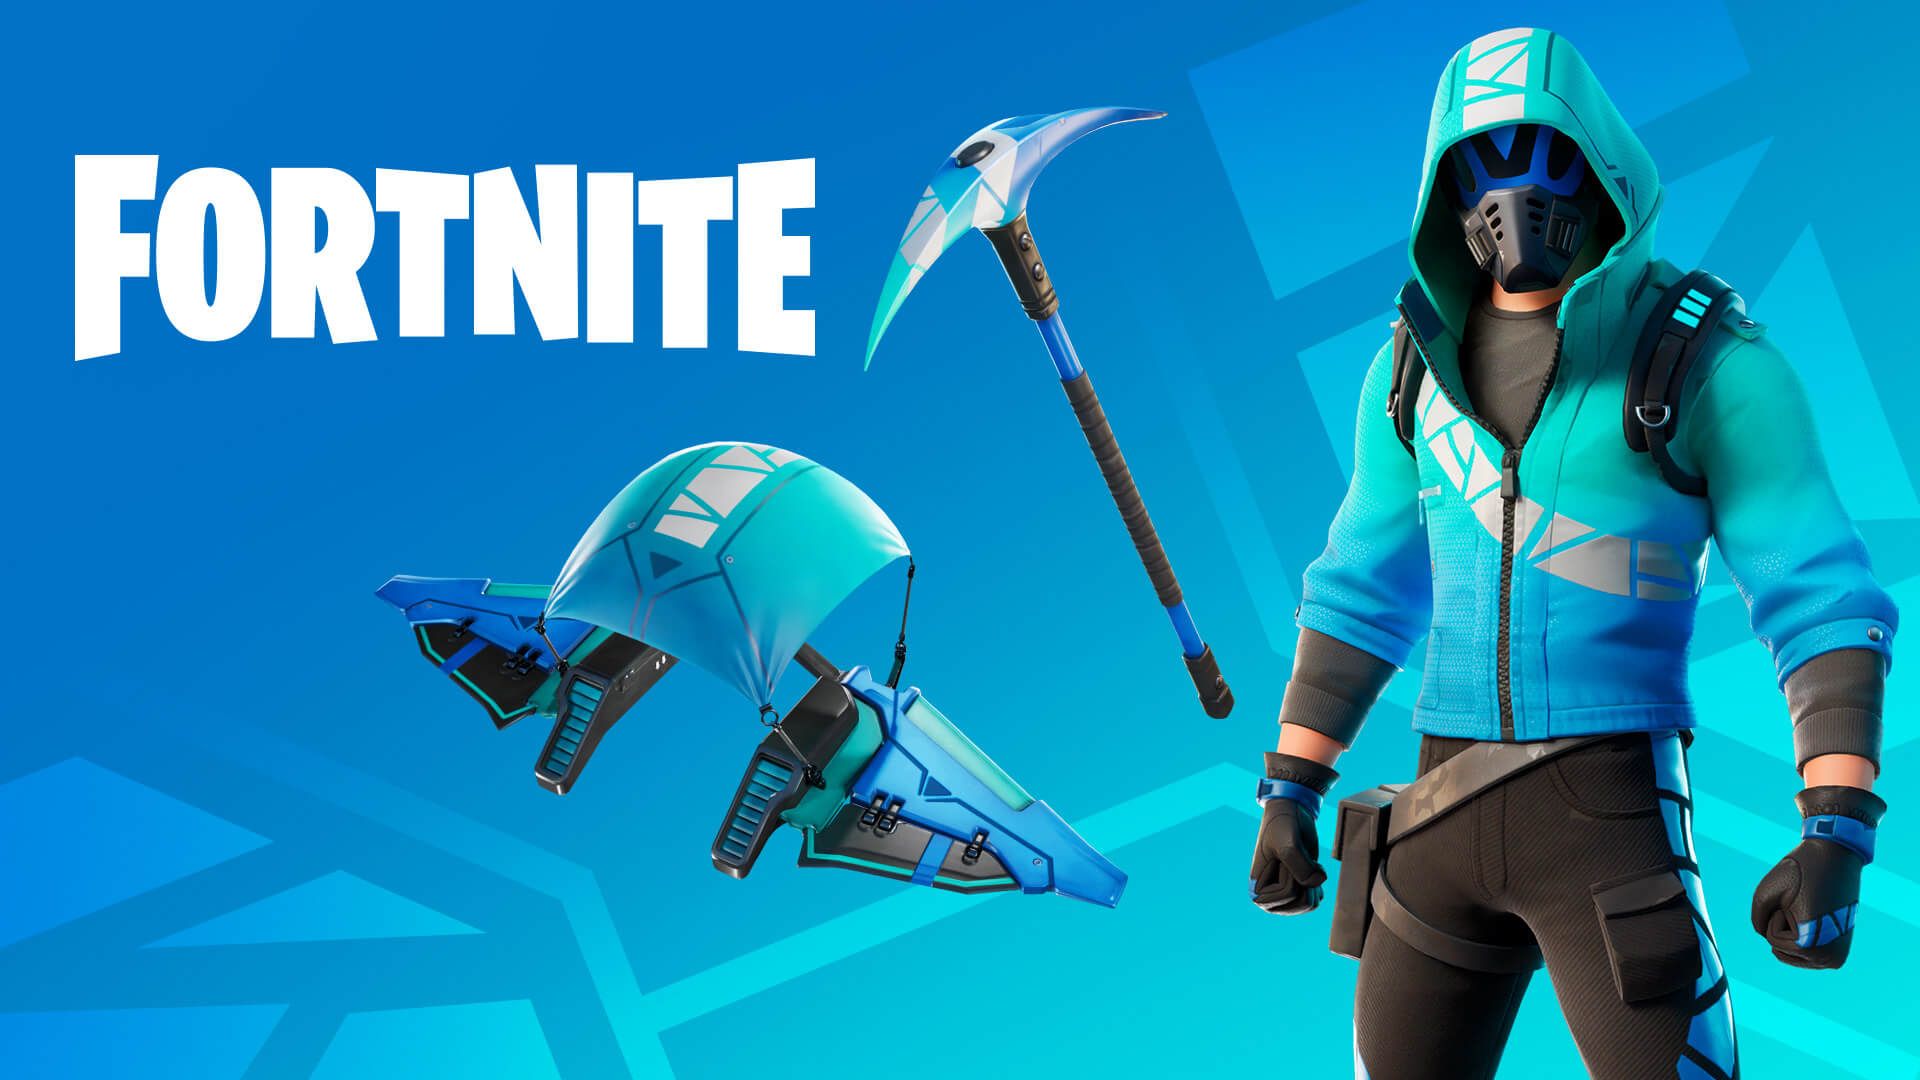 Get a Free Fortnite Skin With a New Intel-Powered PC